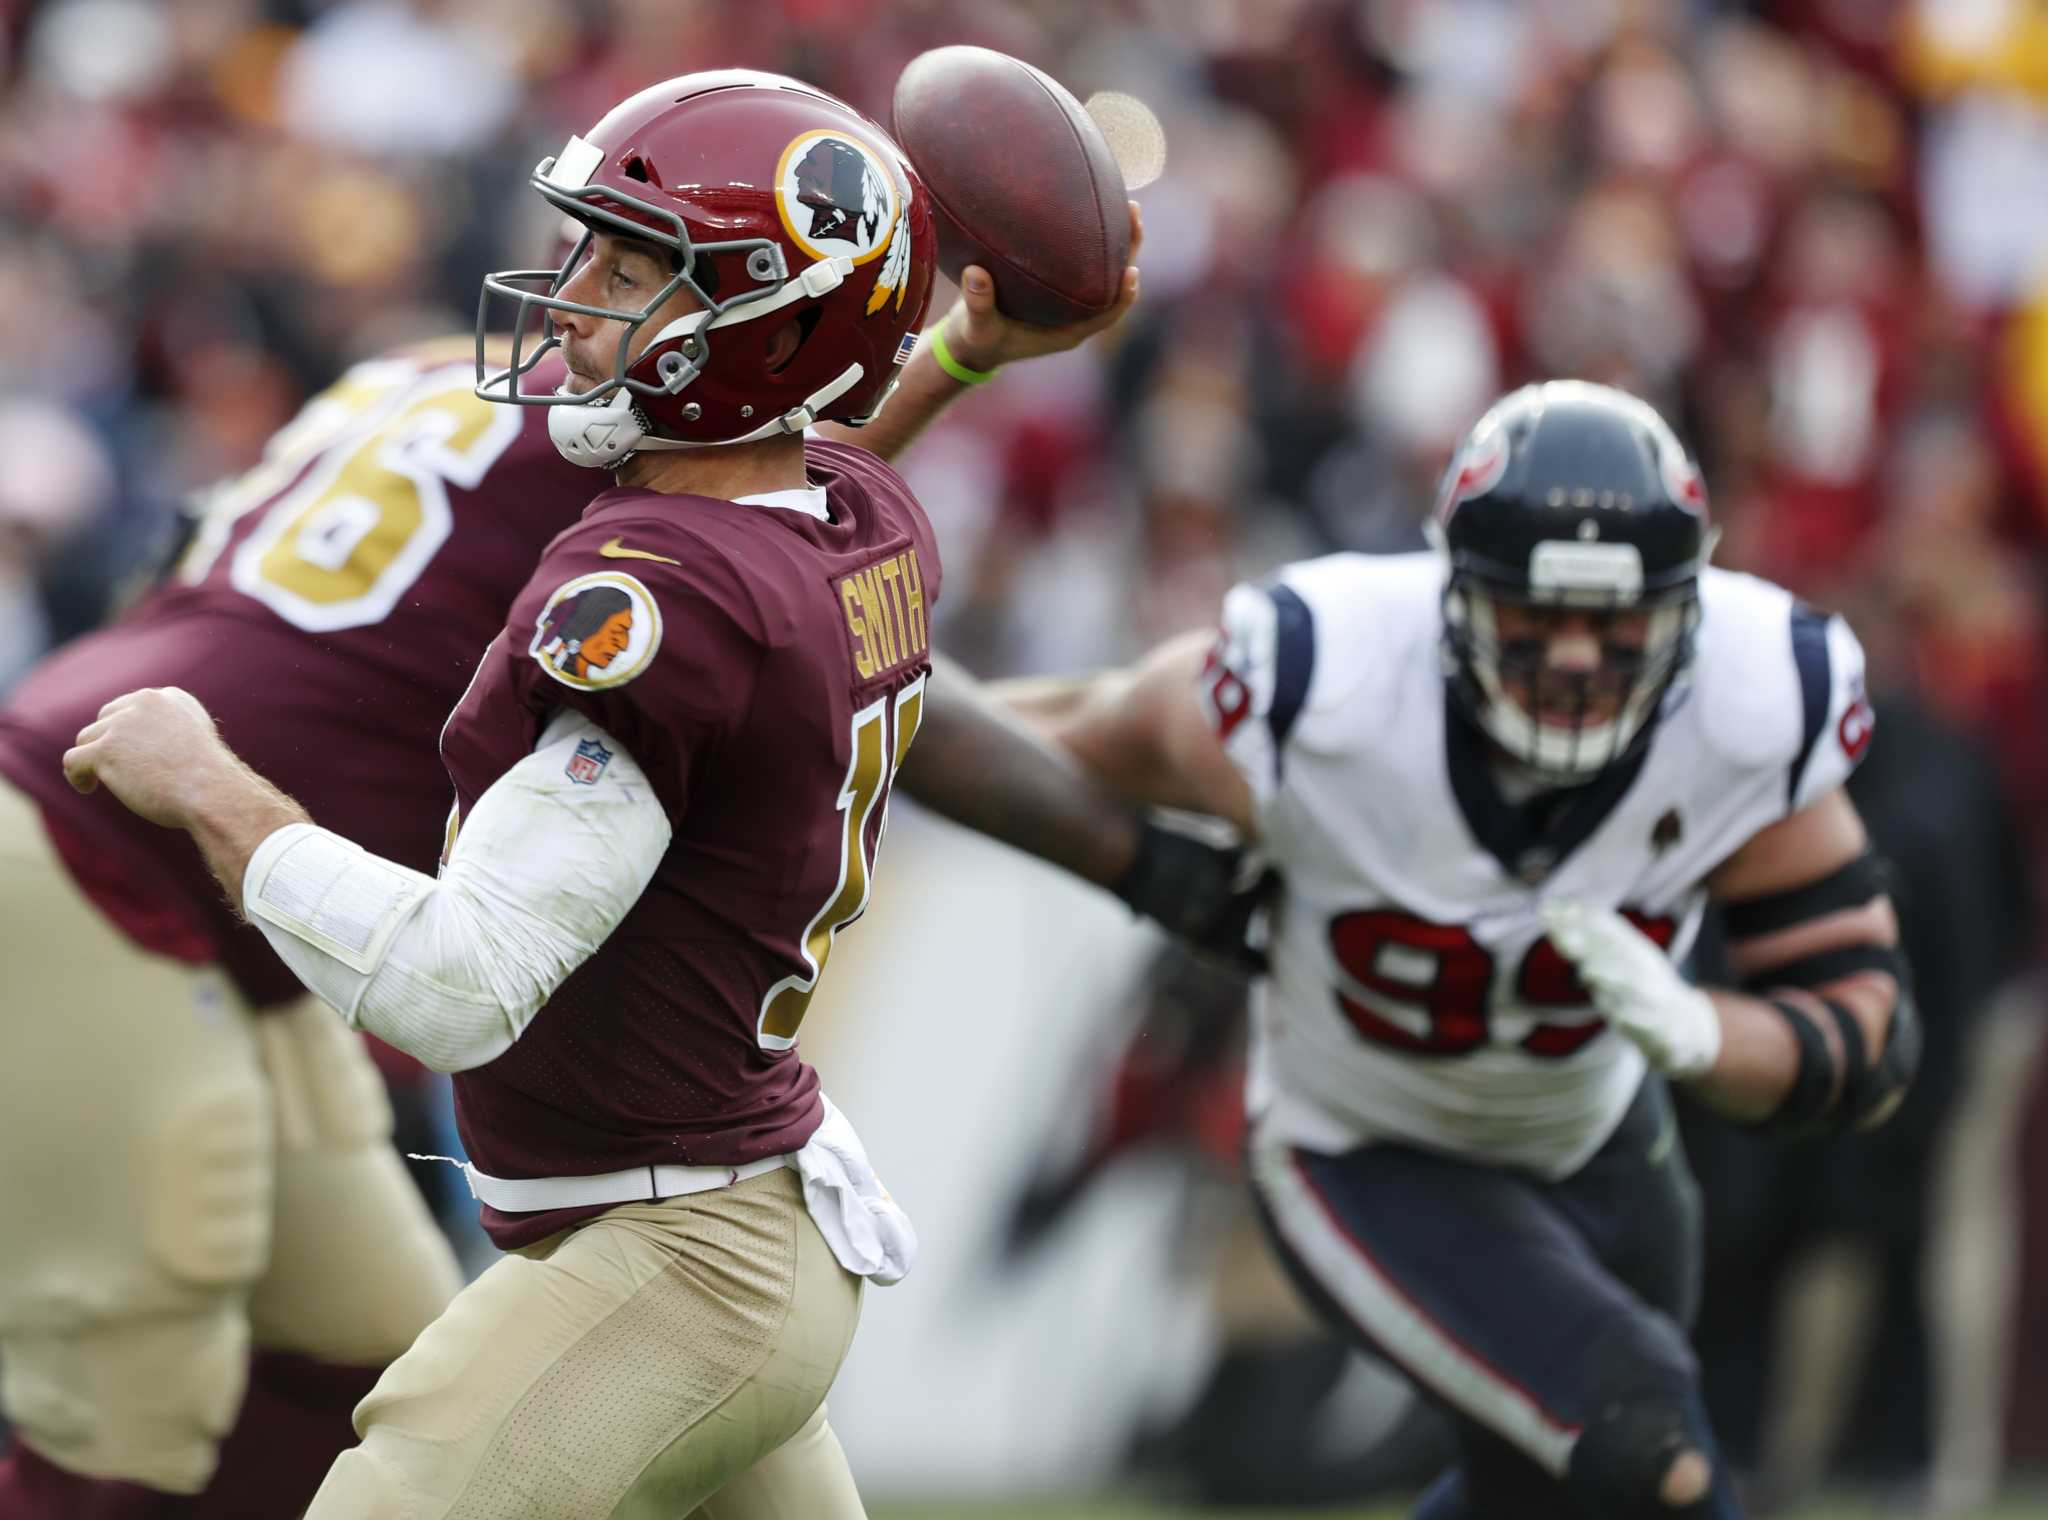 McClain's Mailbag: Should Texans add Alex Smith for QB competition?